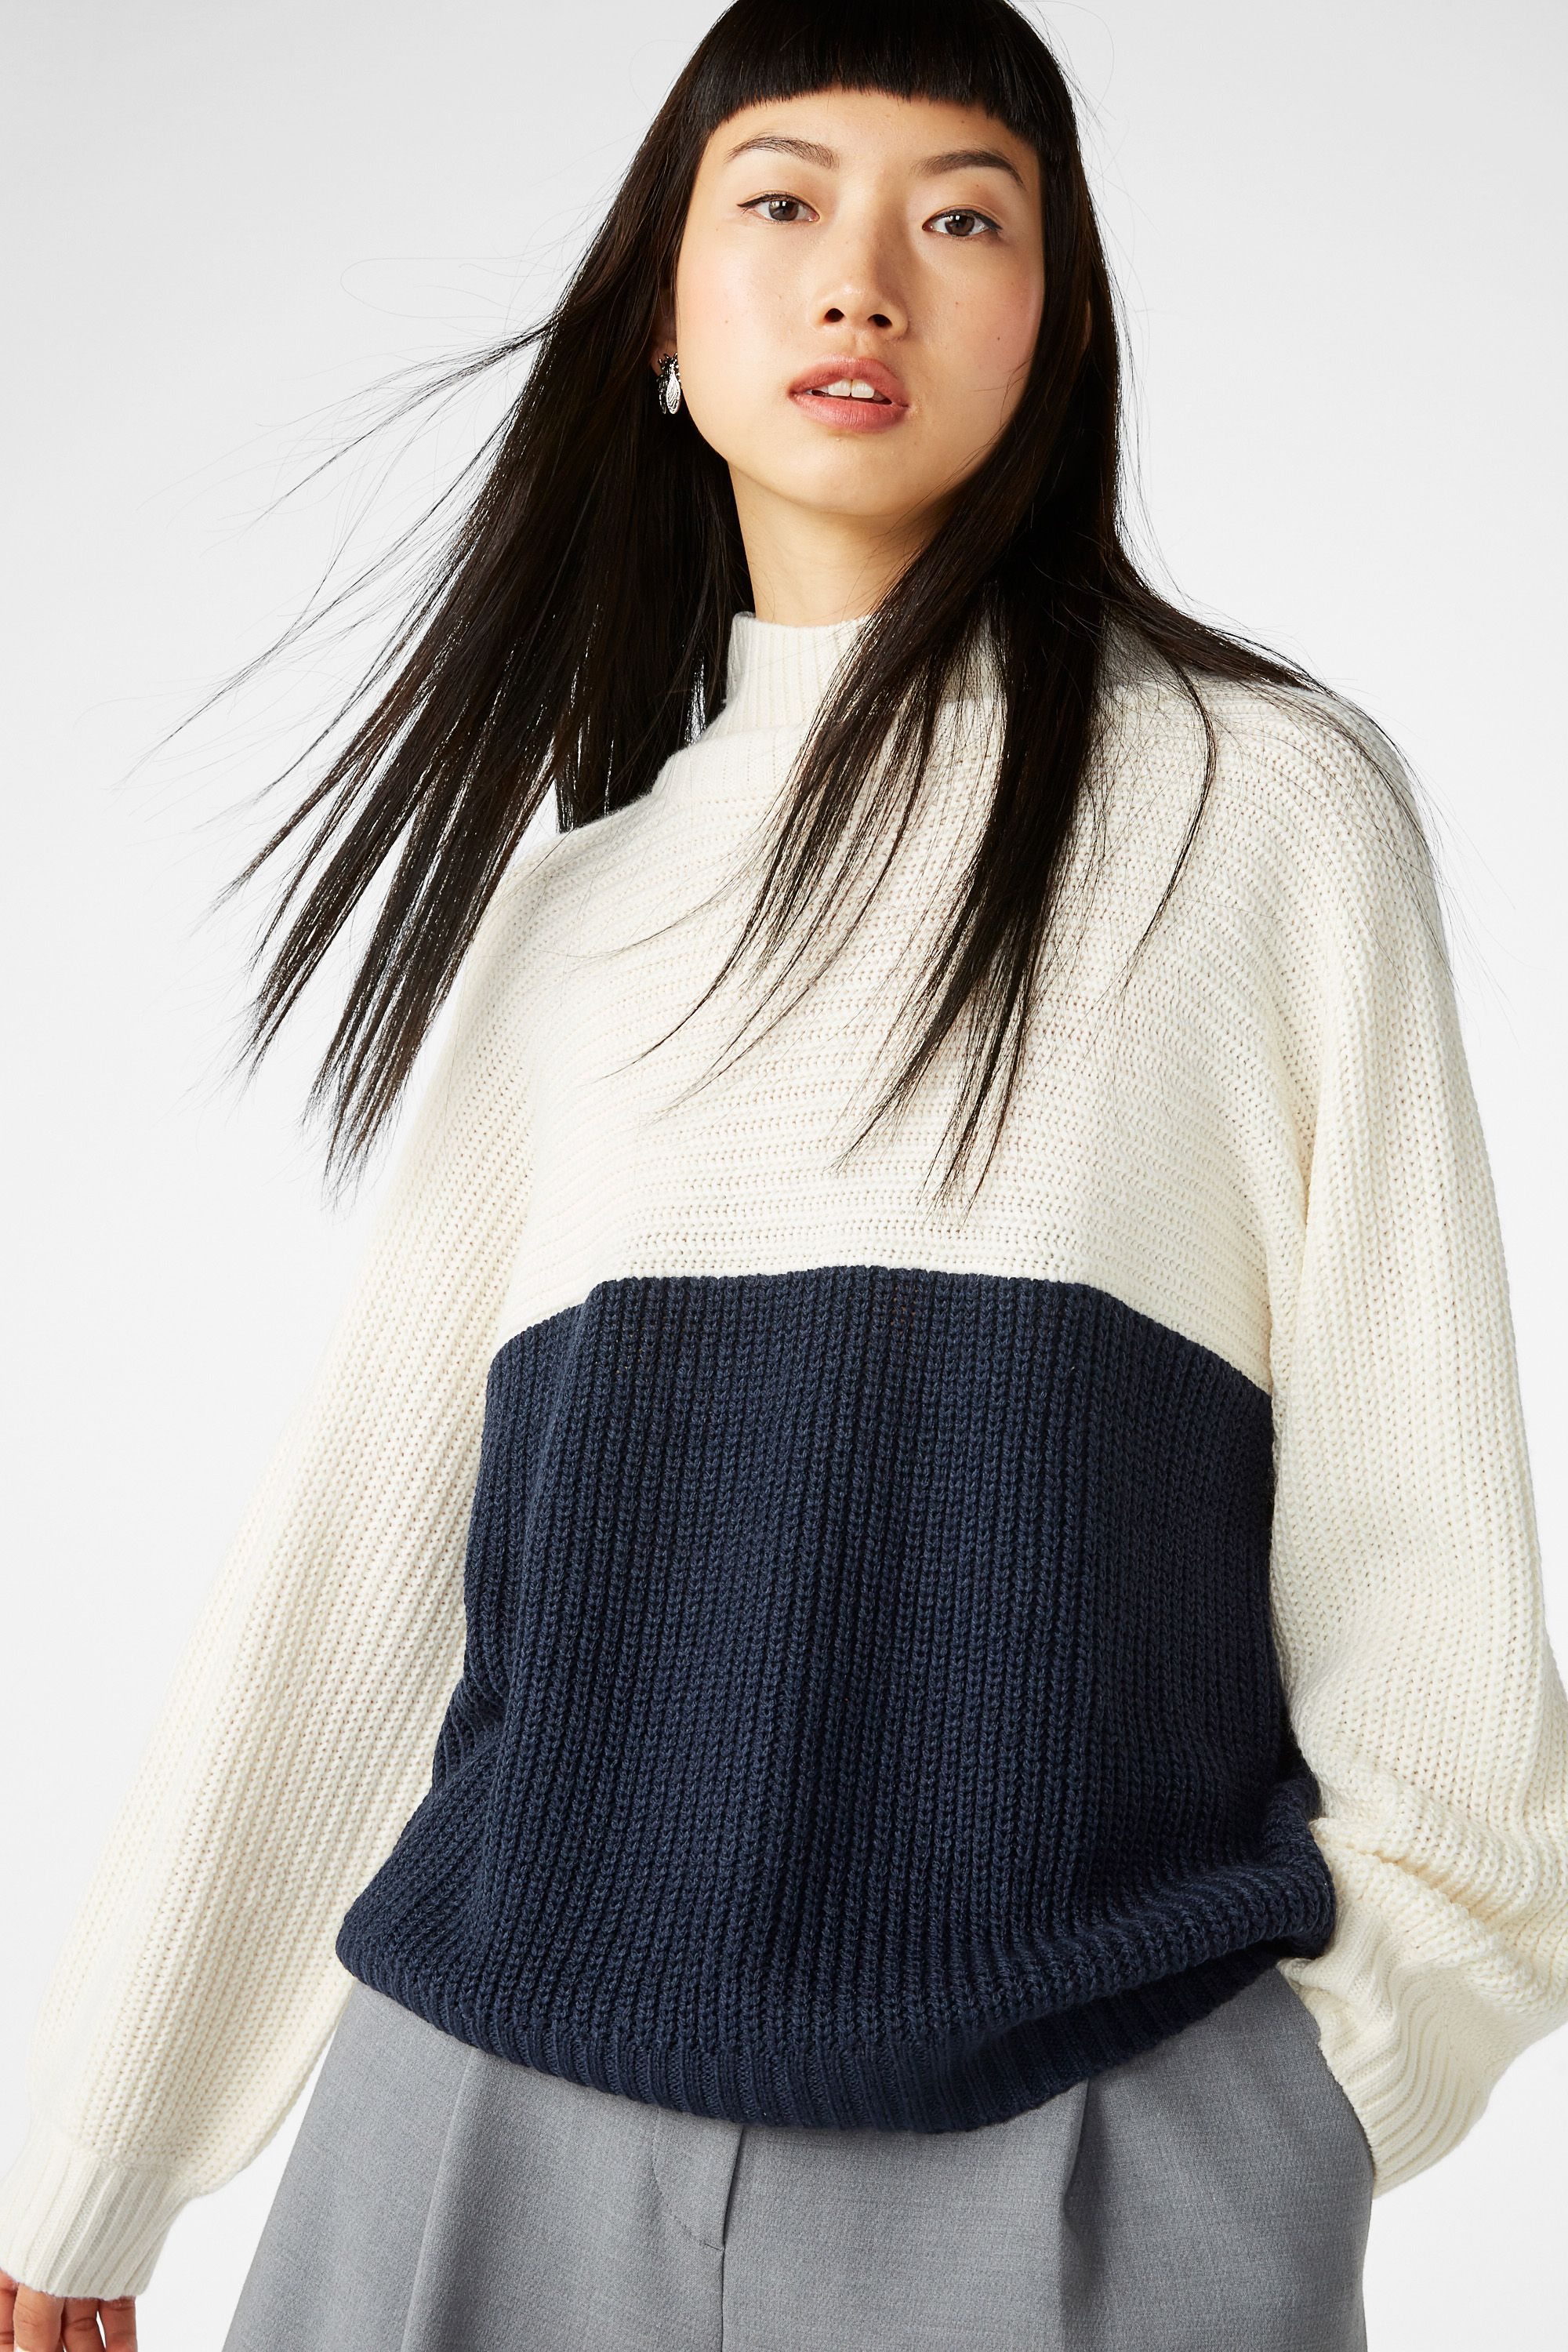 Smile Sweater | Fashion, Sweaters, Knitted sweaters